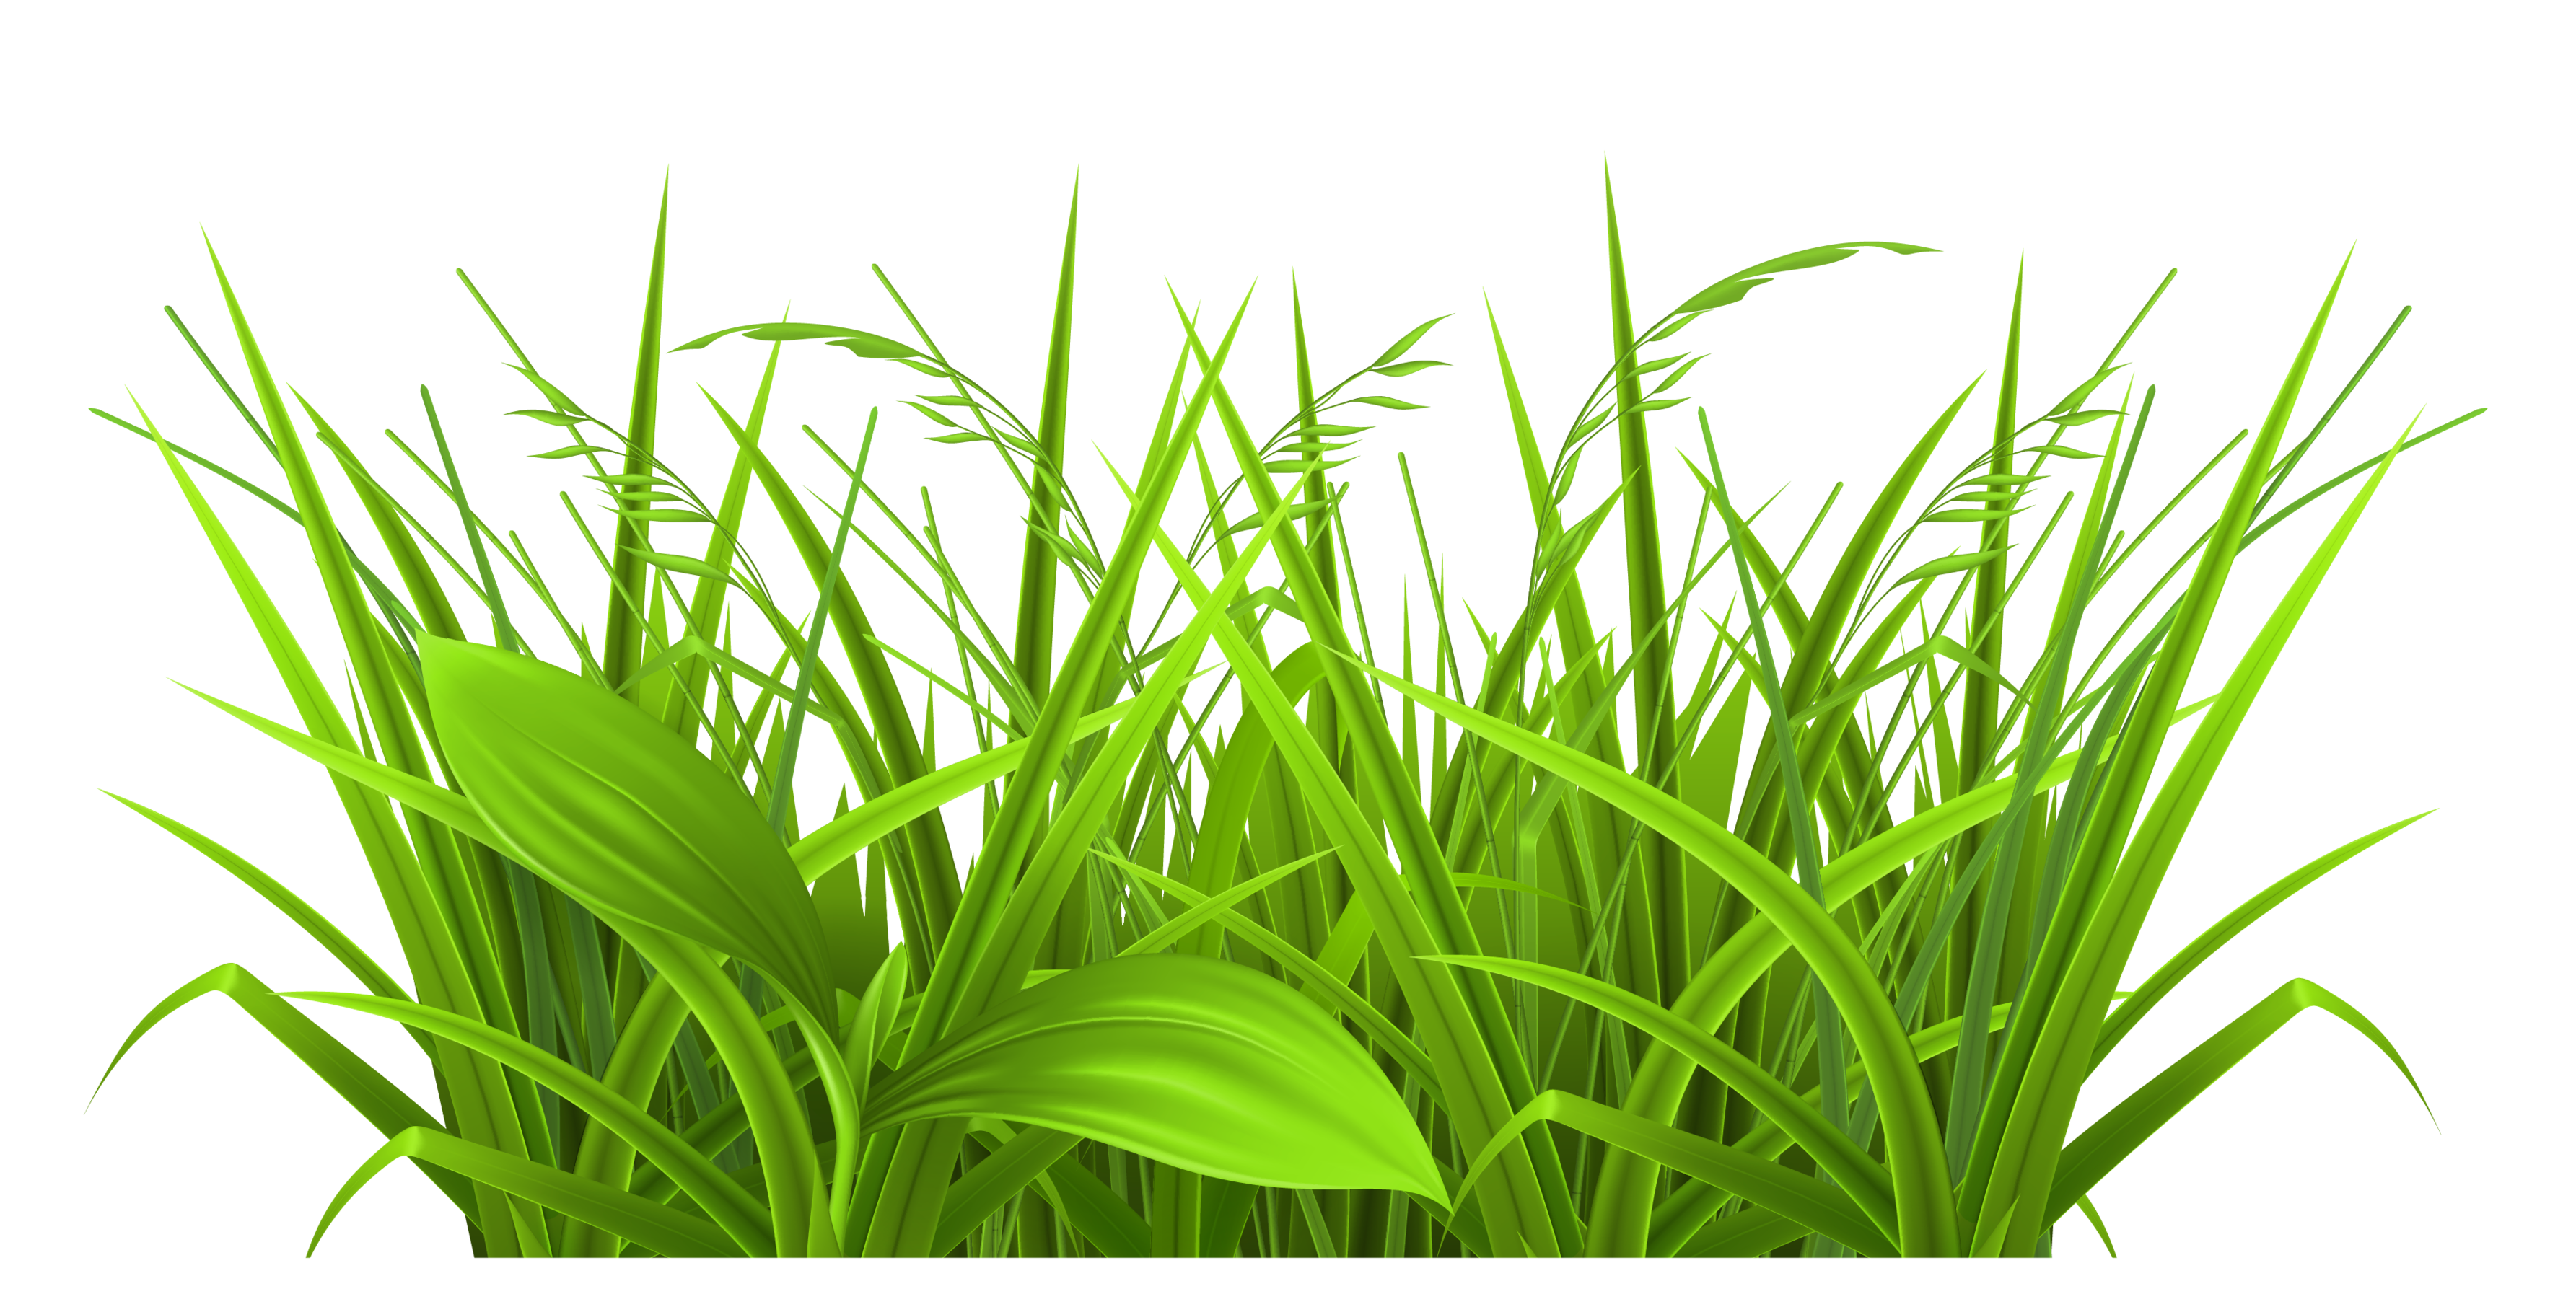 Grass cartoon png. Silhouette free at getdrawings